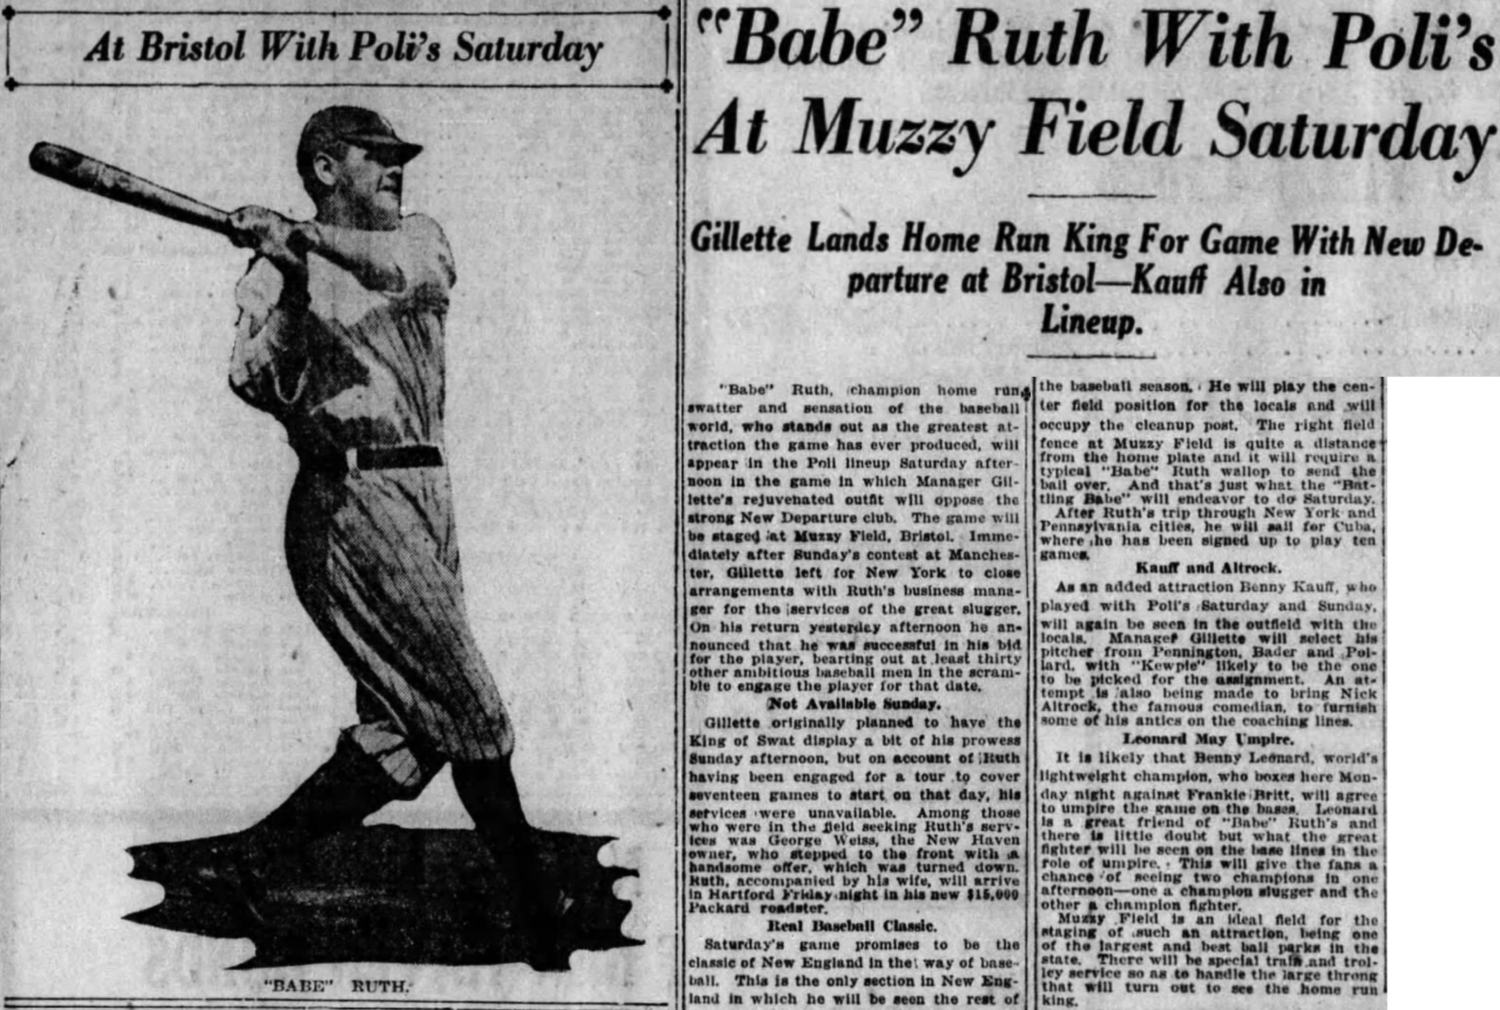 Babe Ruth comes to Muzzy Field, 1920.